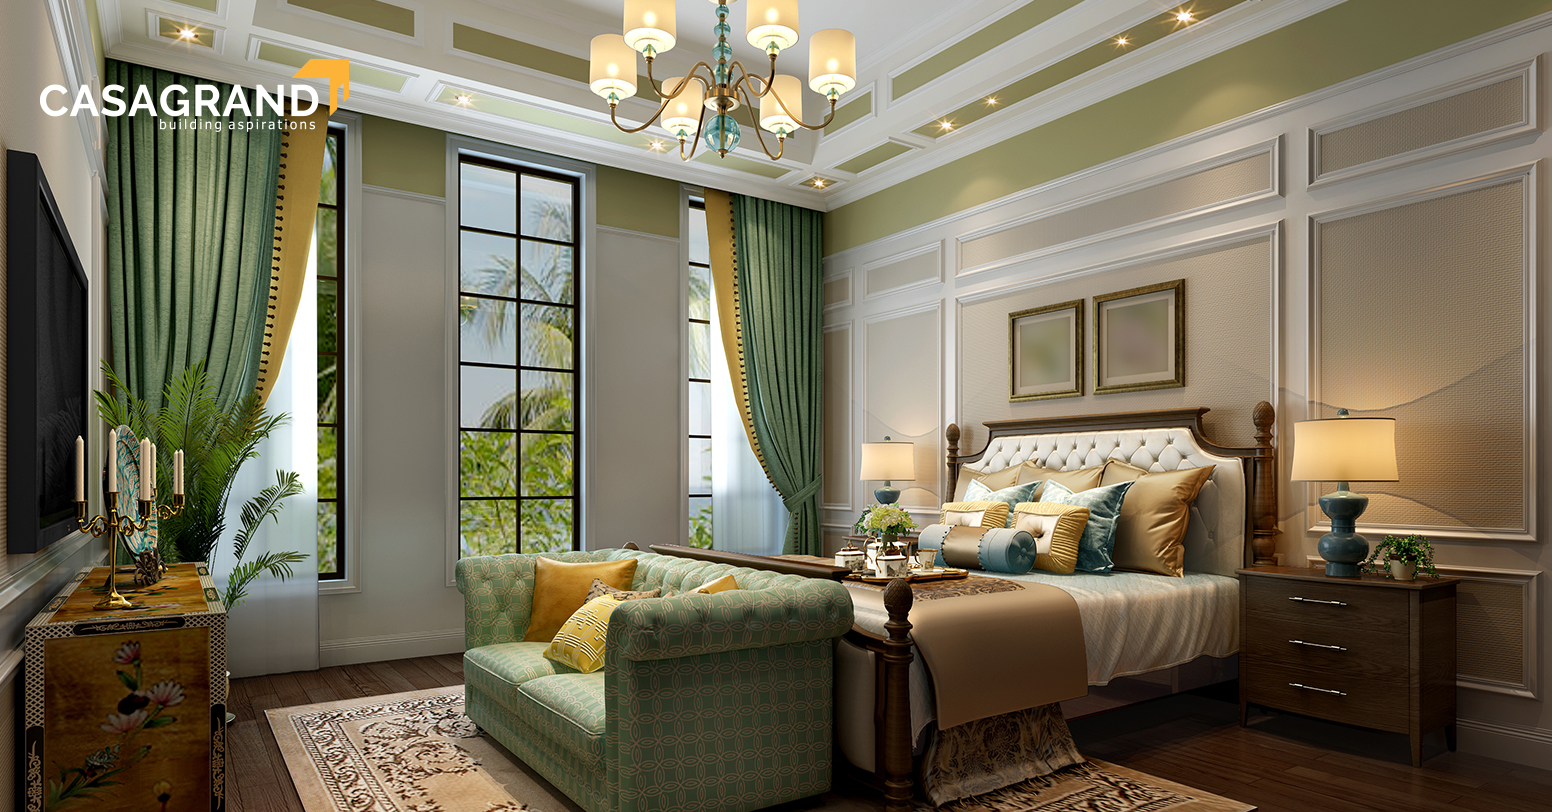 Top Bedroom Decorating Ideas for Couples